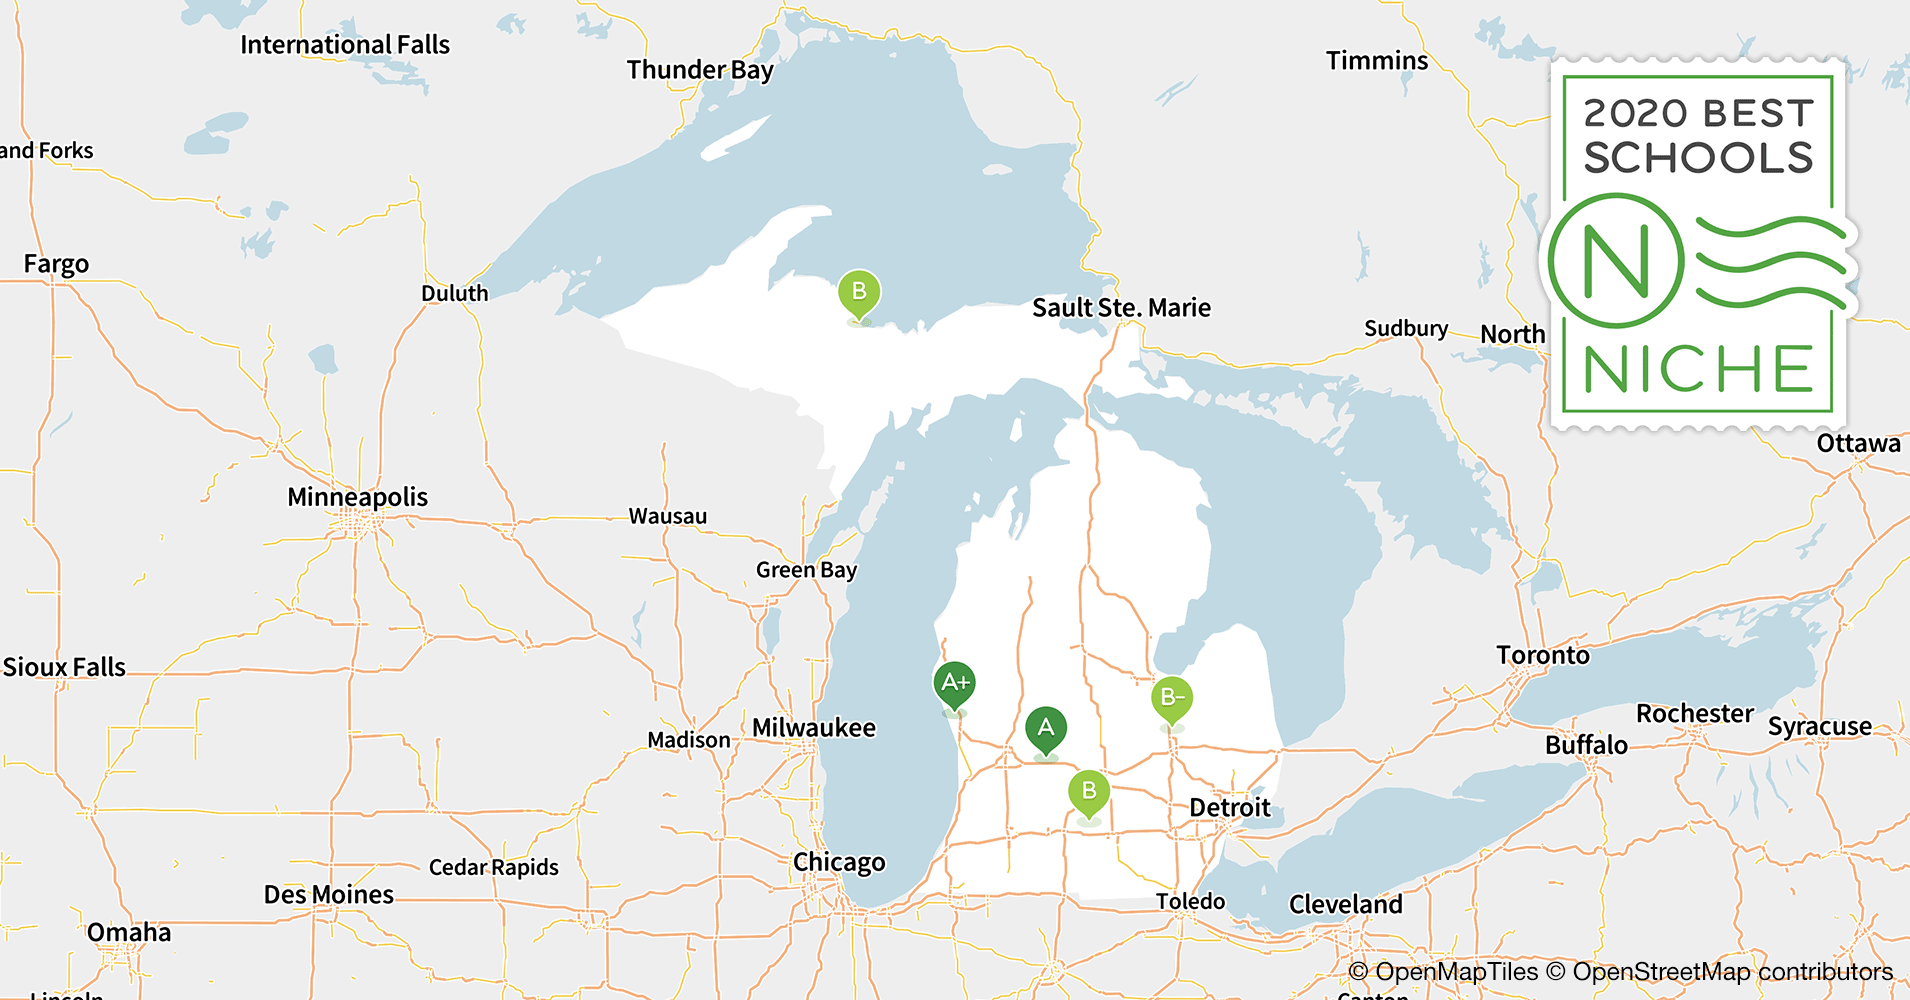 2020 Best School Districts in Michigan - Niche